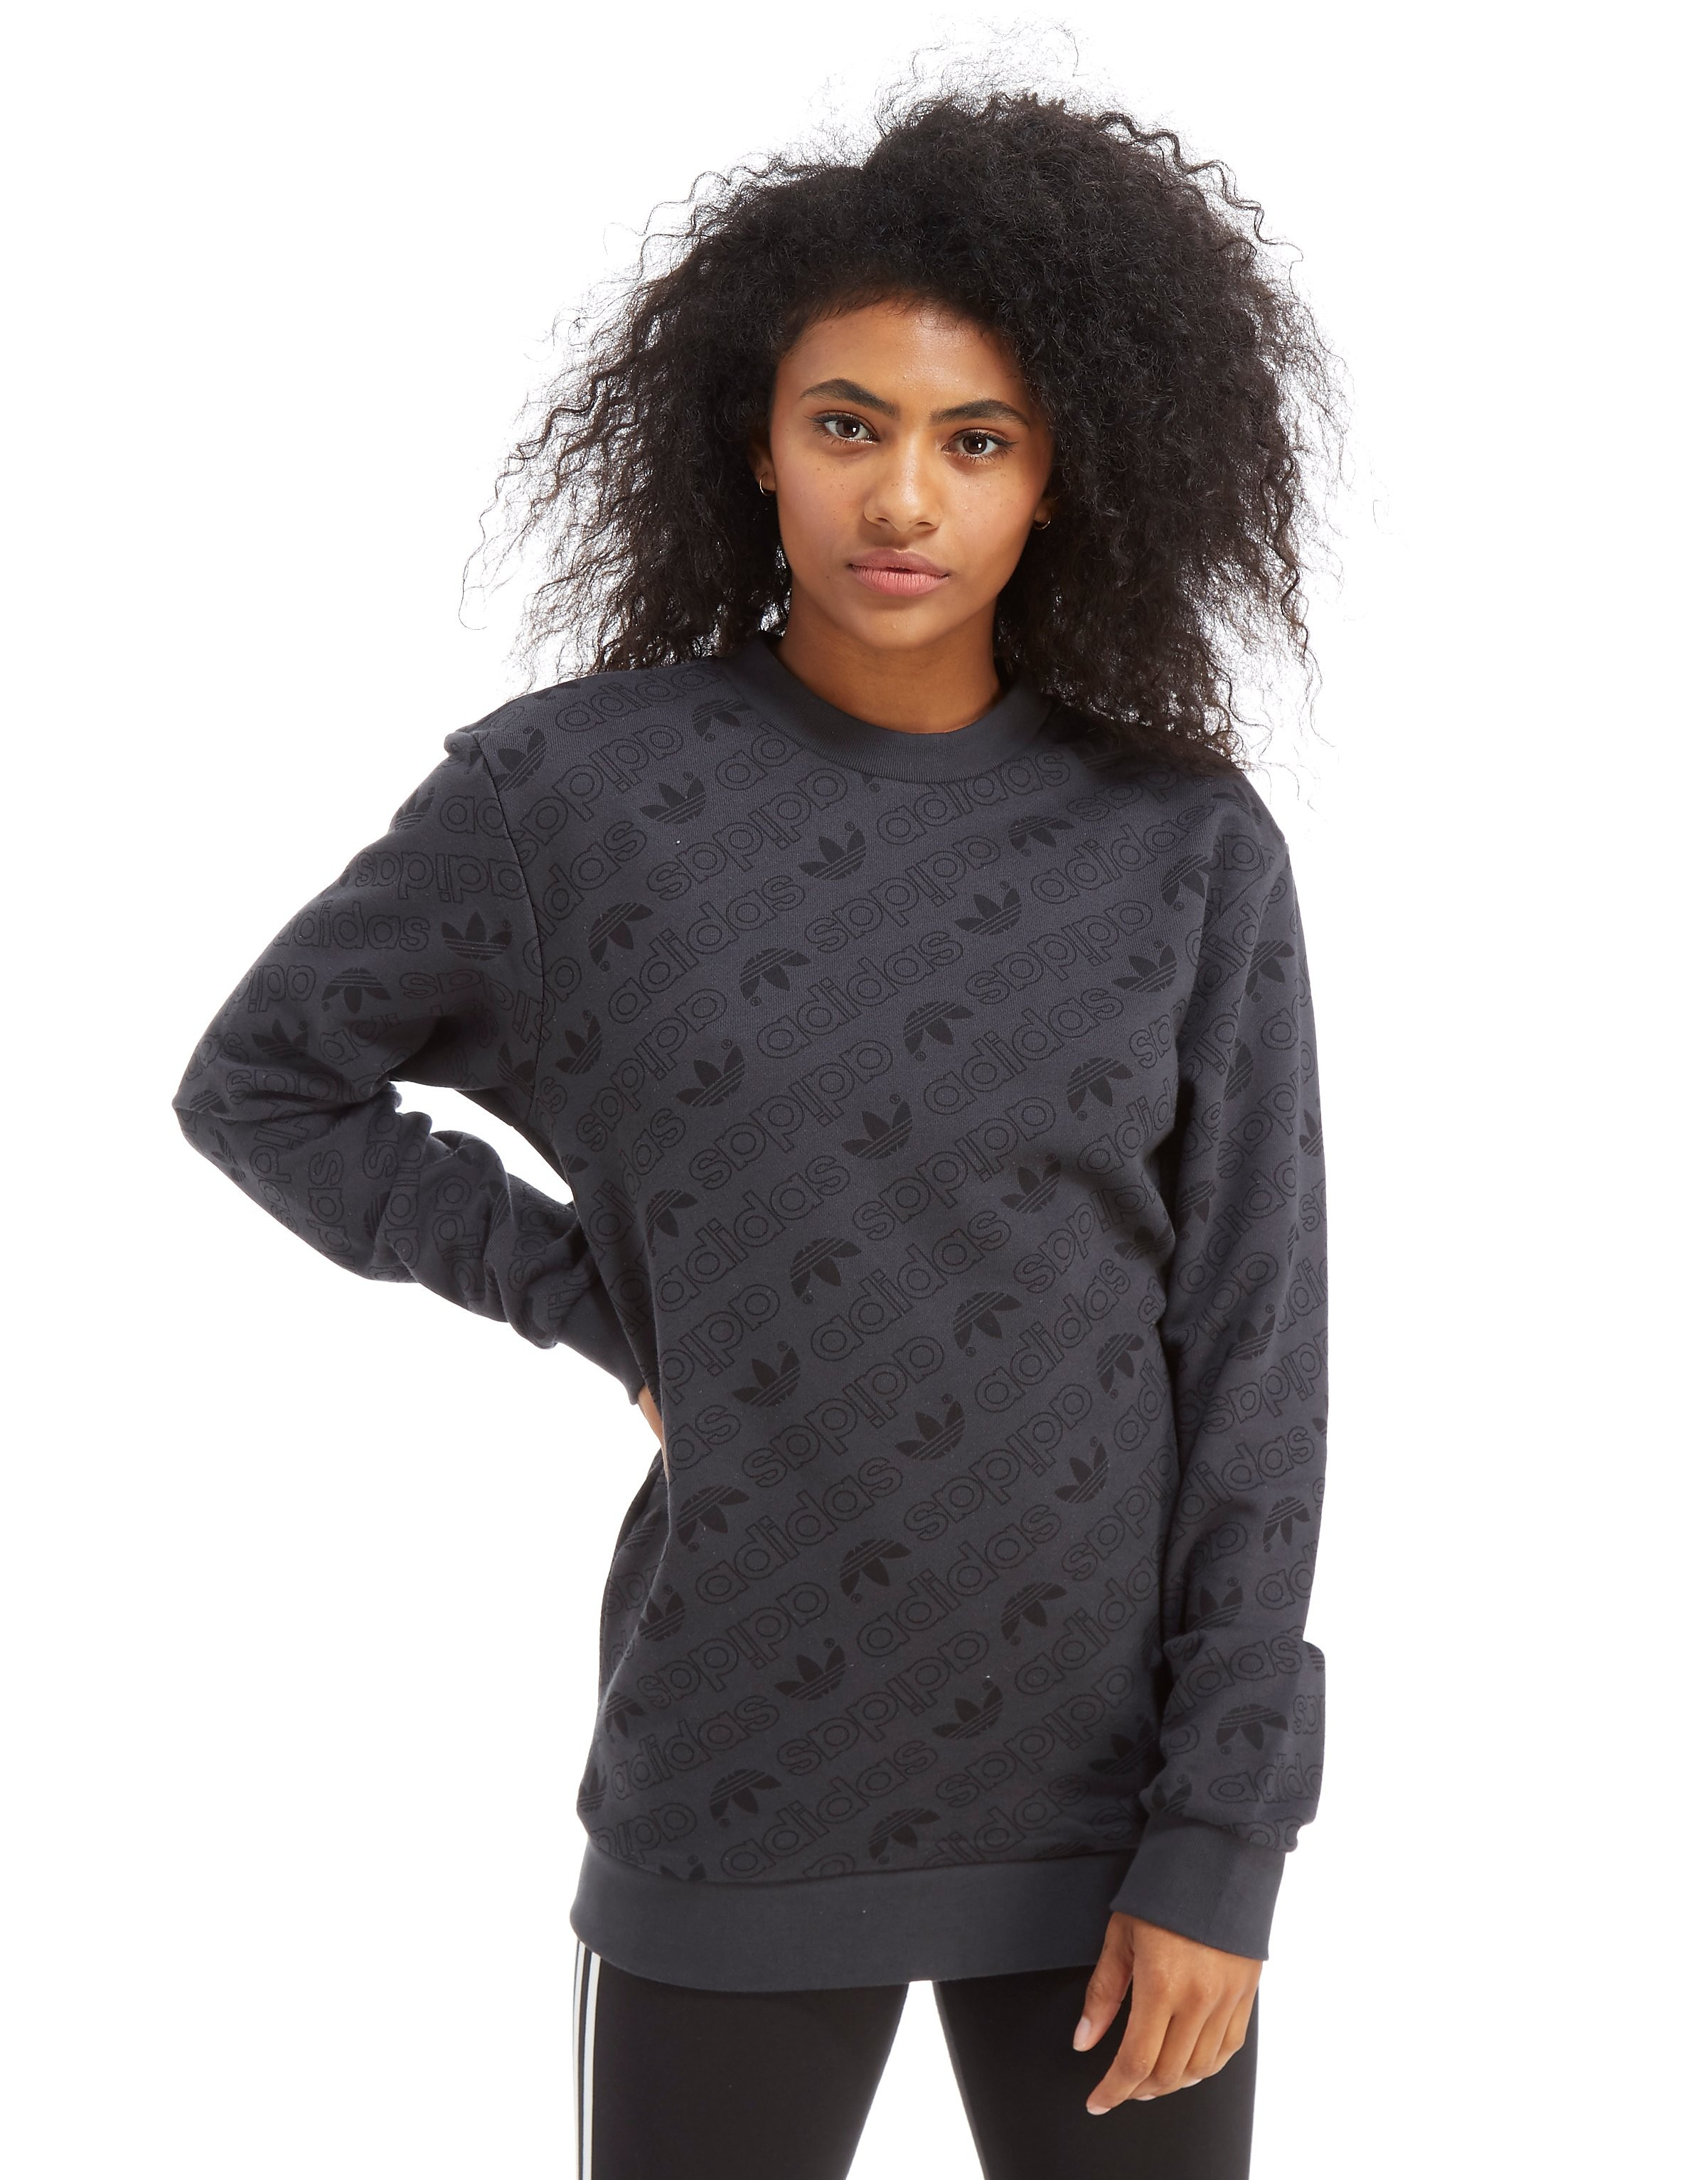 adidas Originals All Over Print Crew Sweatshirt